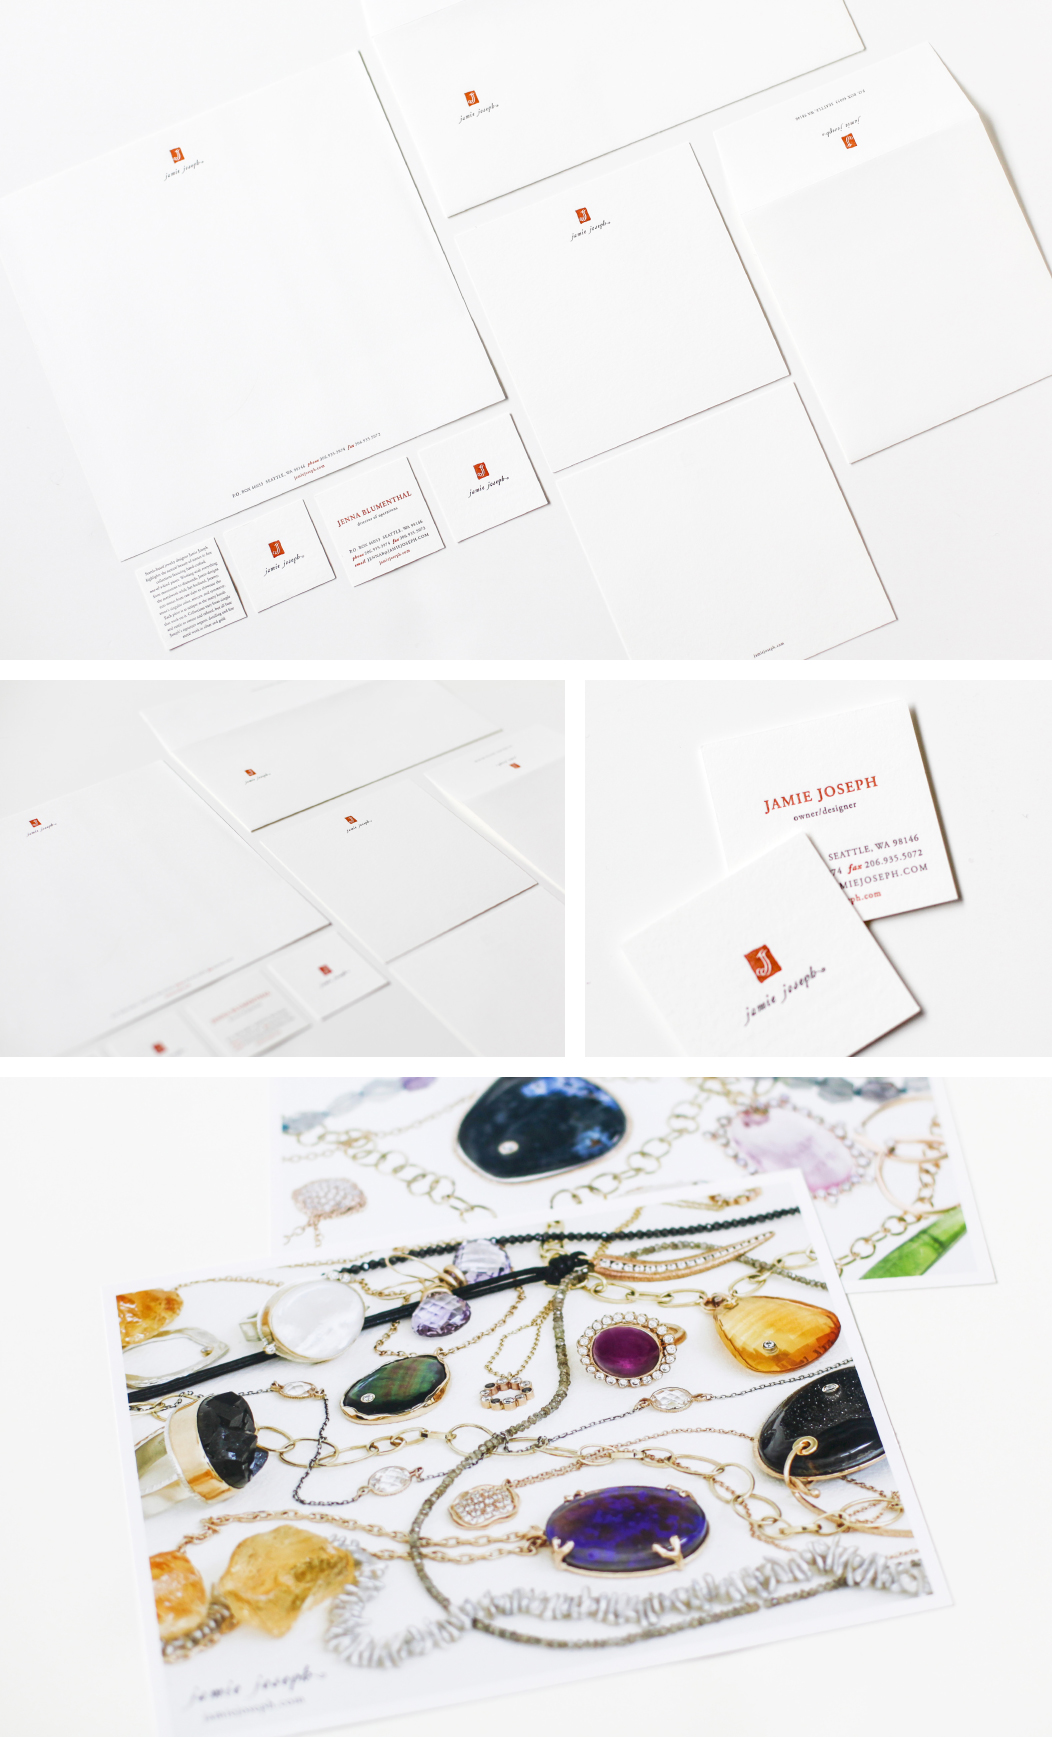 Jamie Joseph Jewelry Stationery And Branding